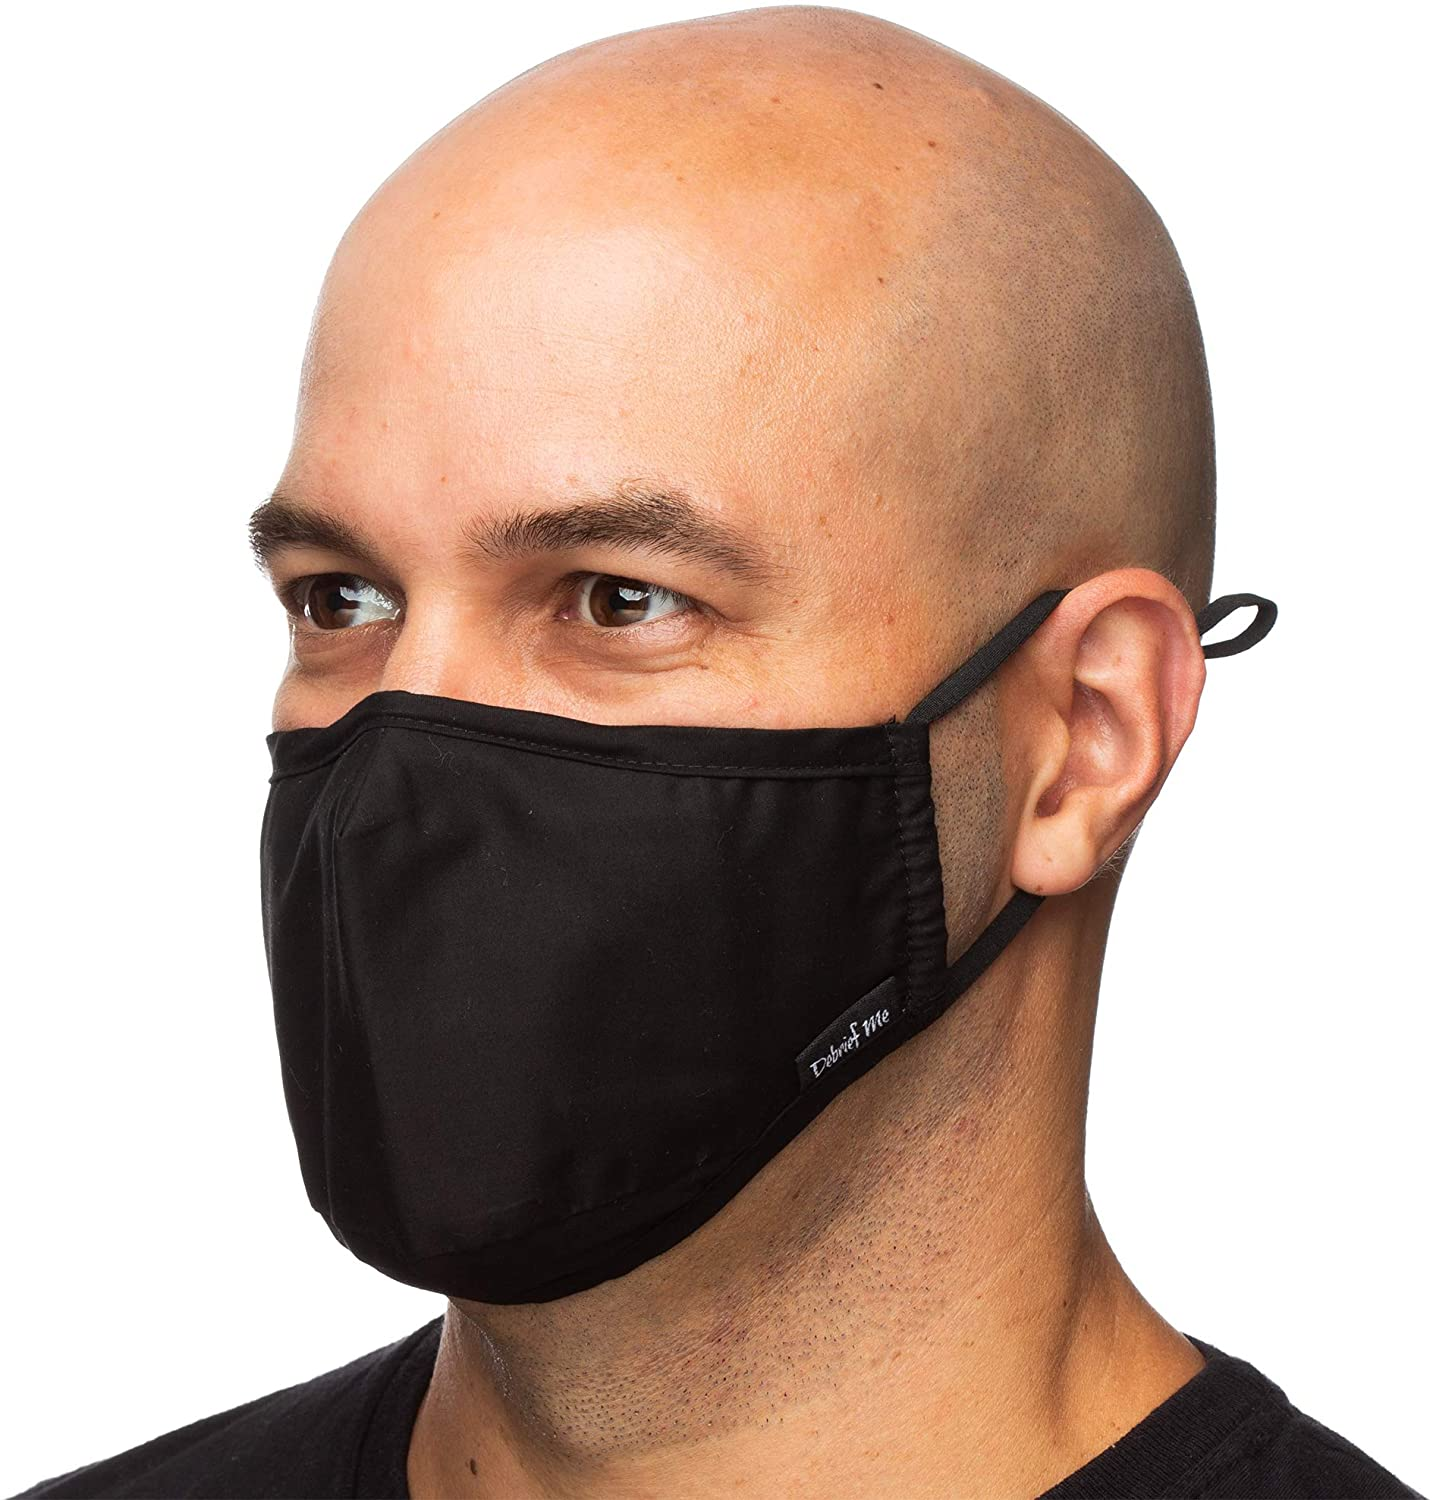 Debrief Me Nose bridge helps prevent slipping Carbon Activated Replaceable Filters Mouth Cover Reusable Comfy Cotton Adjustable Straps Airplane with 2 Extra Filters (Black)